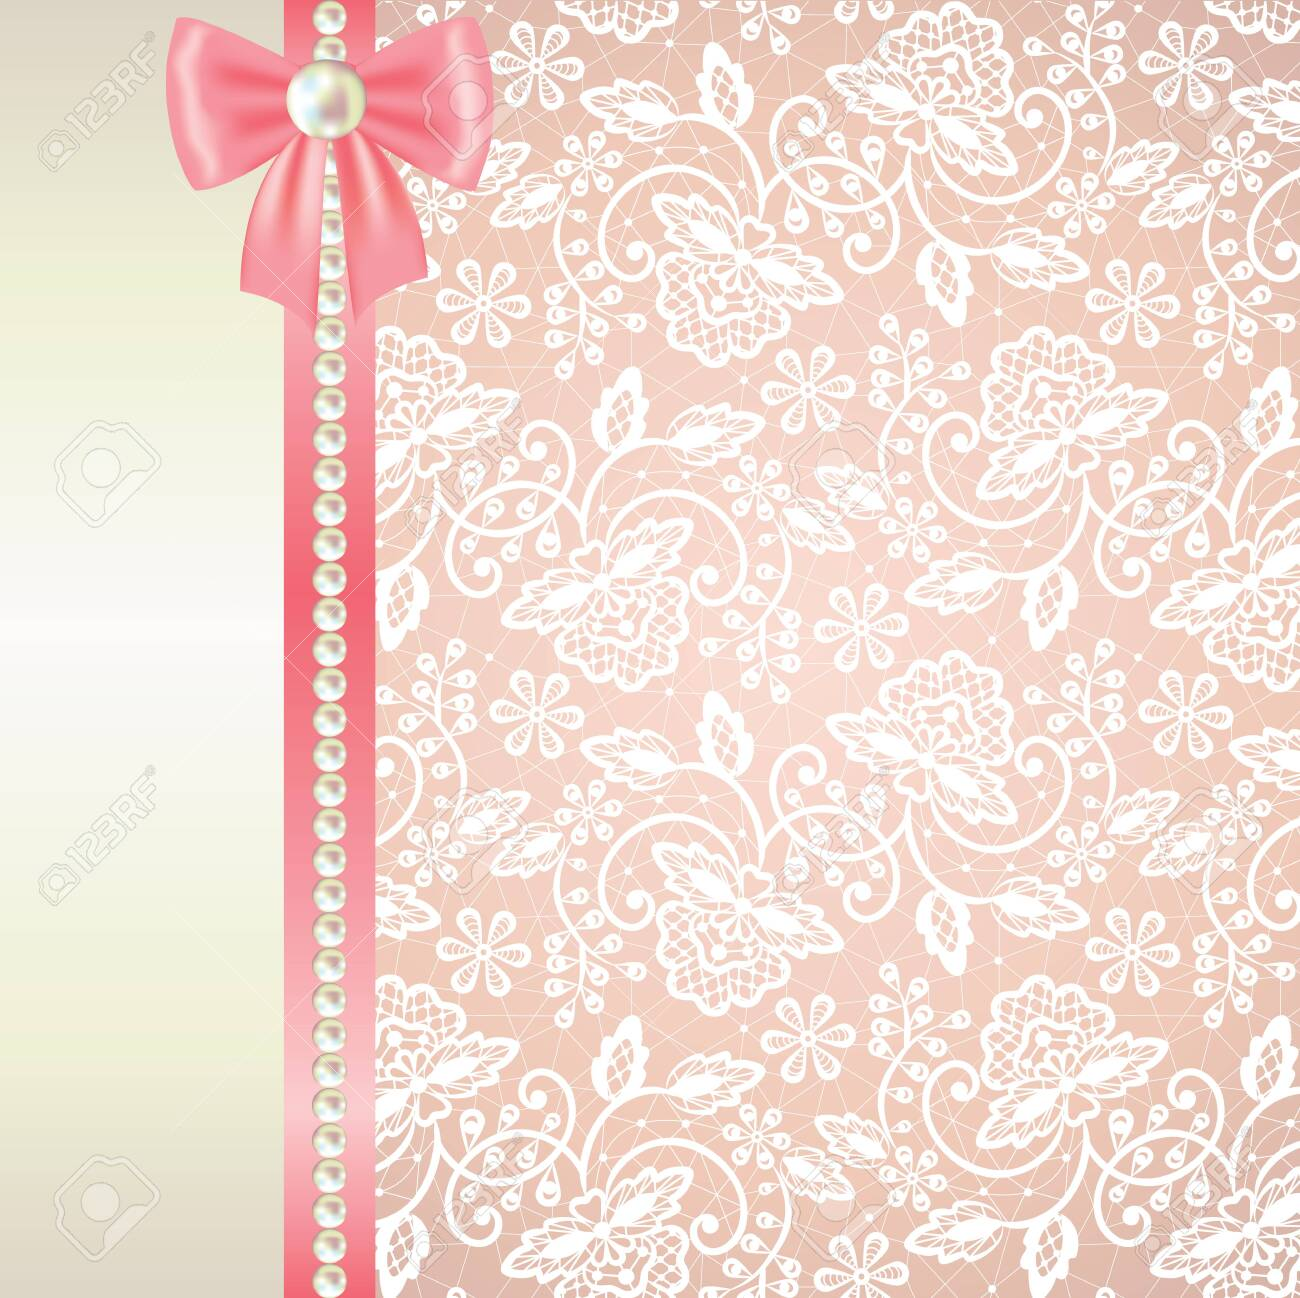 Wedding Or Baby Shower Invitation Or Greeting Card With White Royalty Free Cliparts Vectors And Stock Illustration Image 30312912